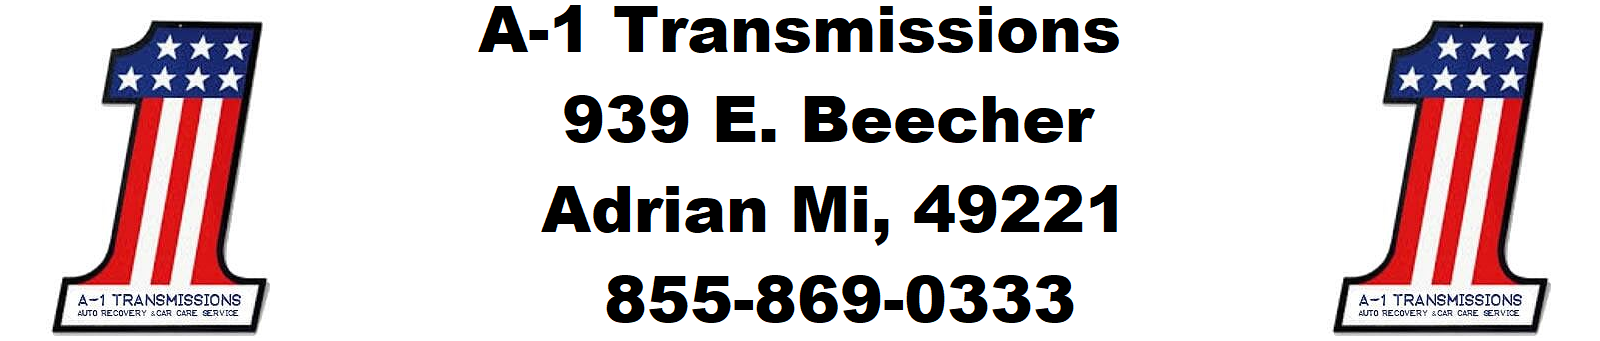 A-1 TRANSMISSIONS TOWING & RECOVERY SERVICE